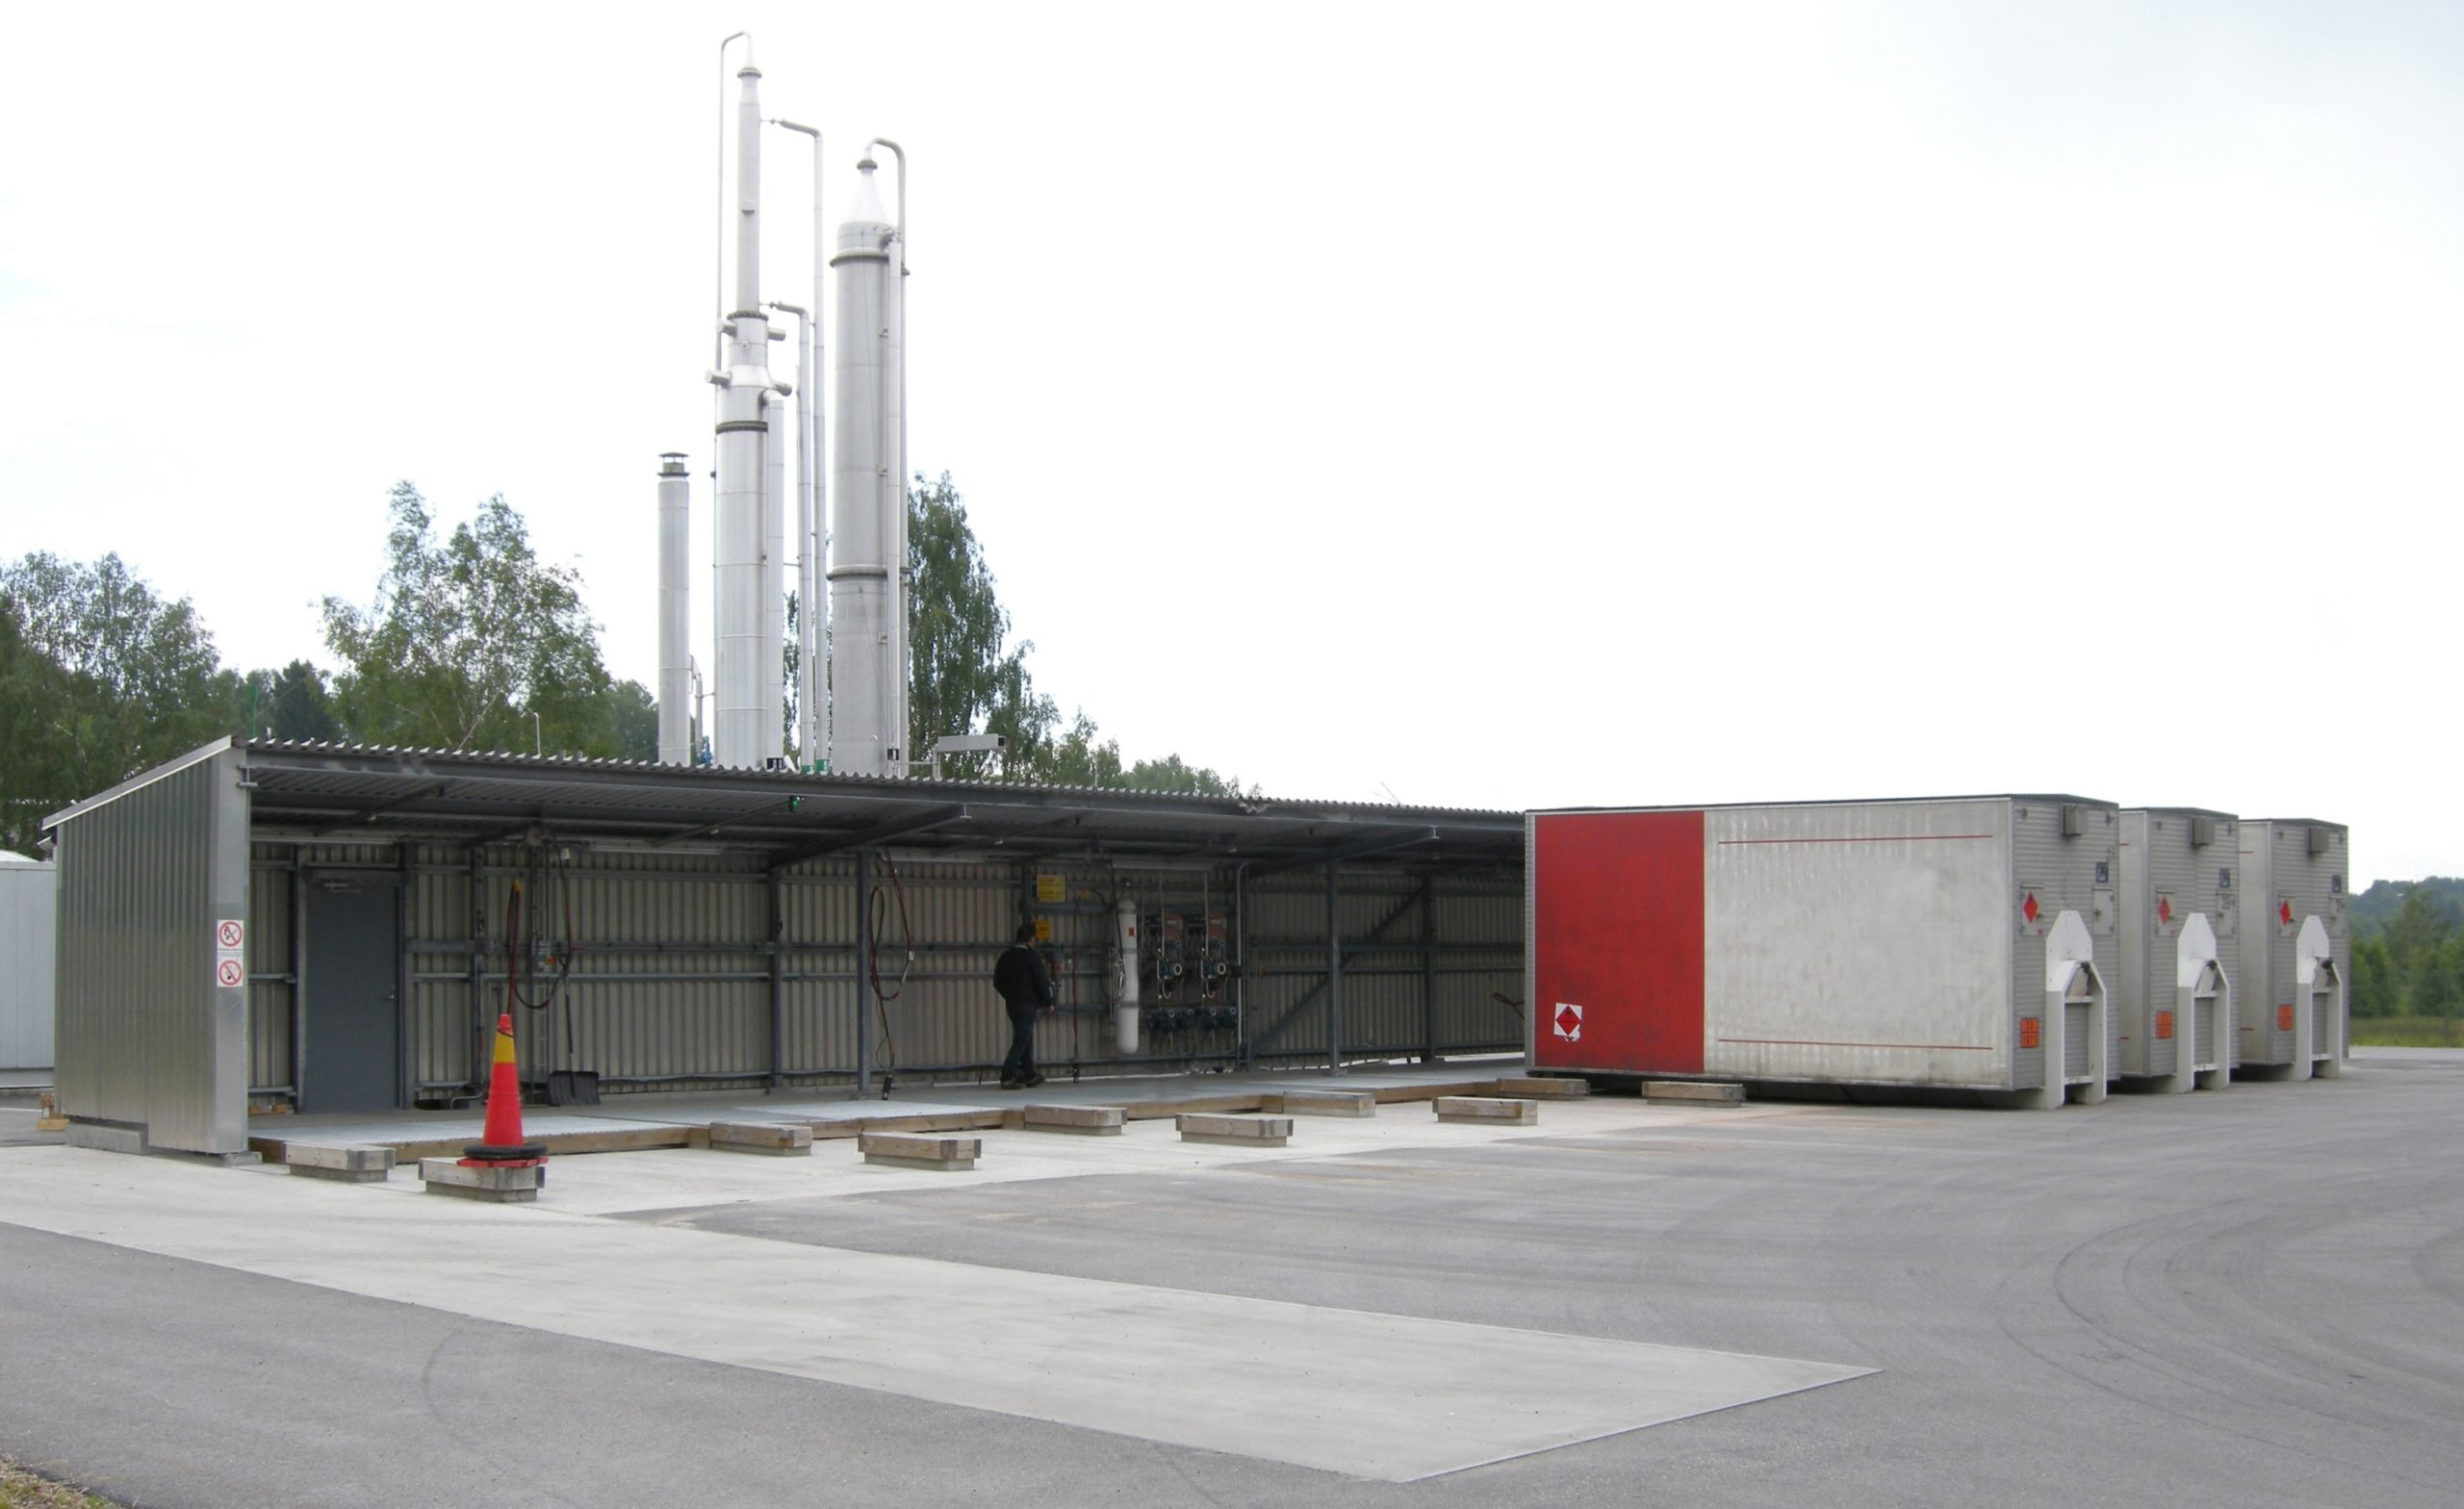 MEMBER'S PRESS RELEASE: Innovation In Biogas Upgrading From Puregas Solutions